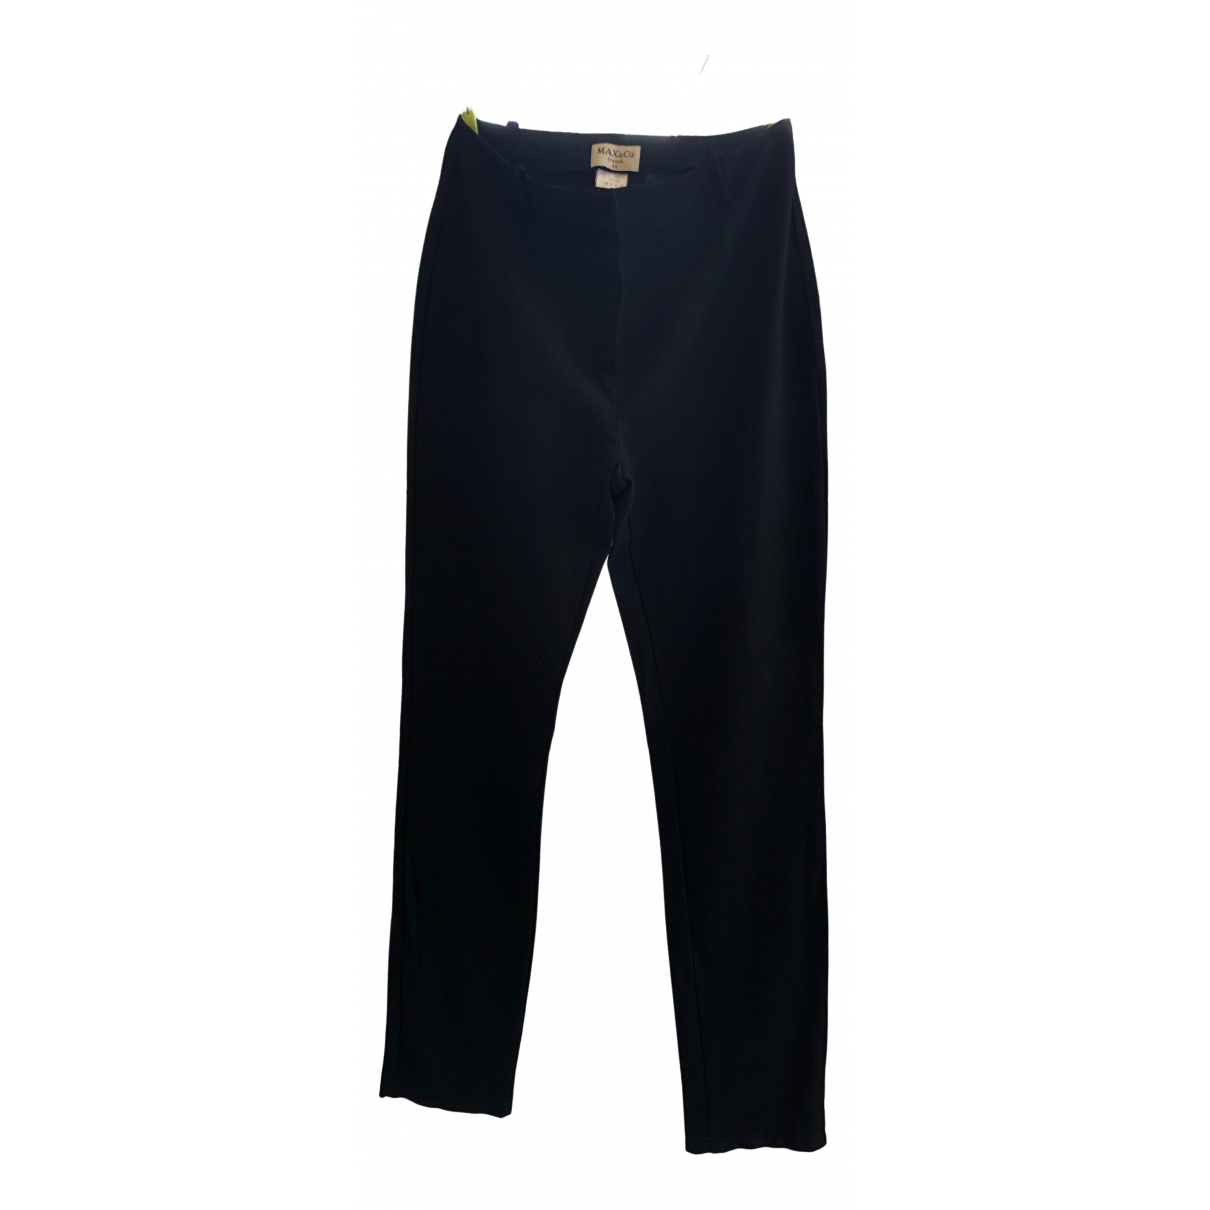 Max & Co \N Black Wool Trousers for Women 44 IT